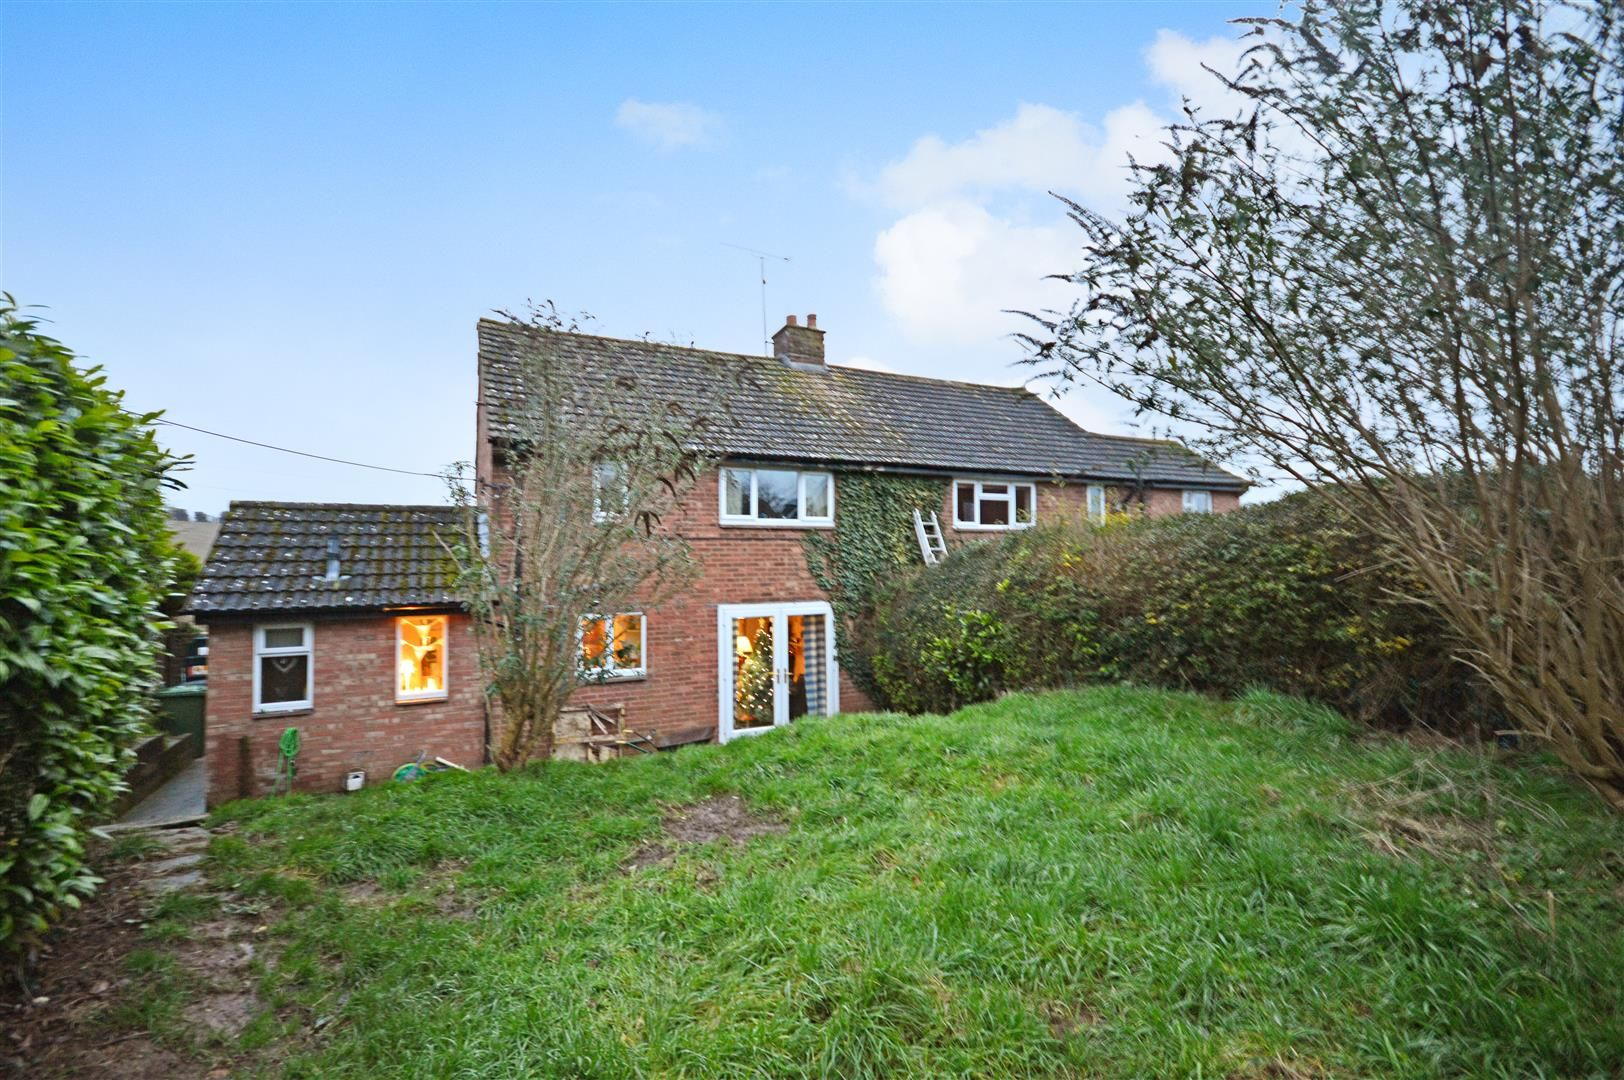 3 bed semi-detached for sale in Much Birch  - Property Image 12